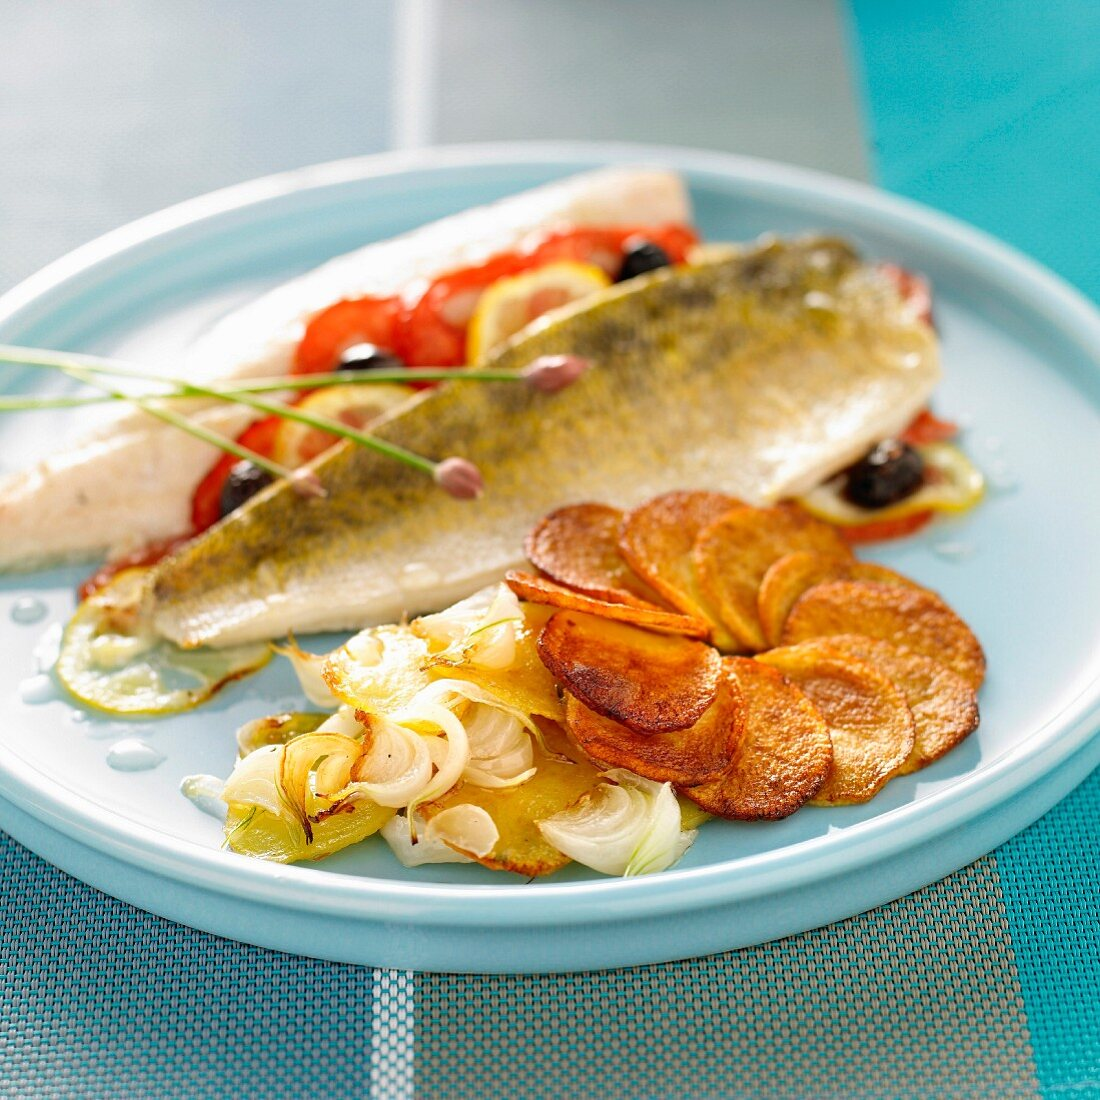 Pike-perch fillet with tomatoes and olives, sauteed potatoes and spring onions